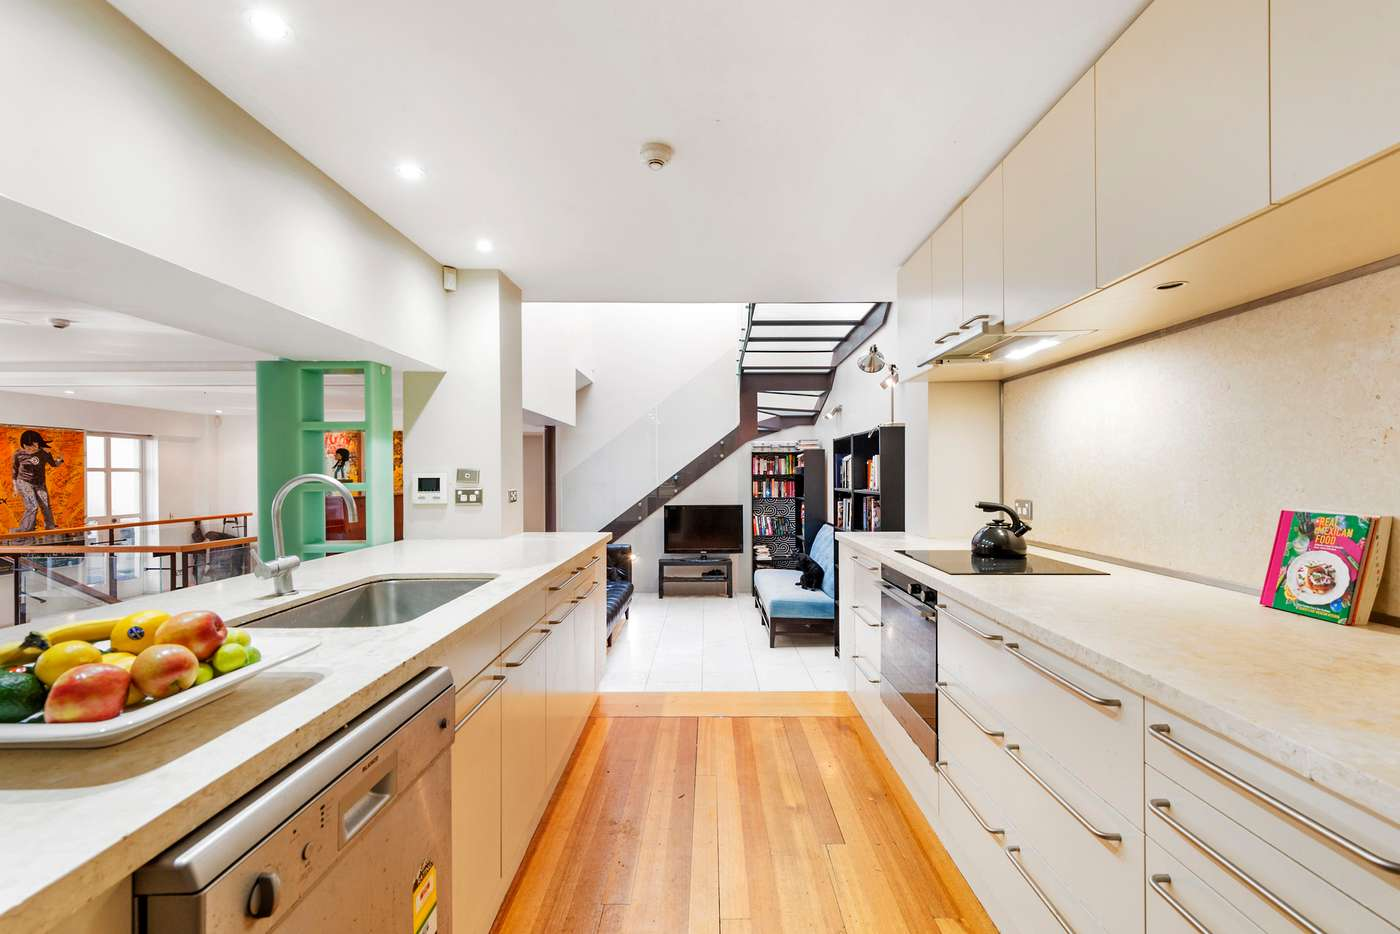 Main view of Homely apartment listing, 17/16 O'Connell Street, Sydney NSW 2000